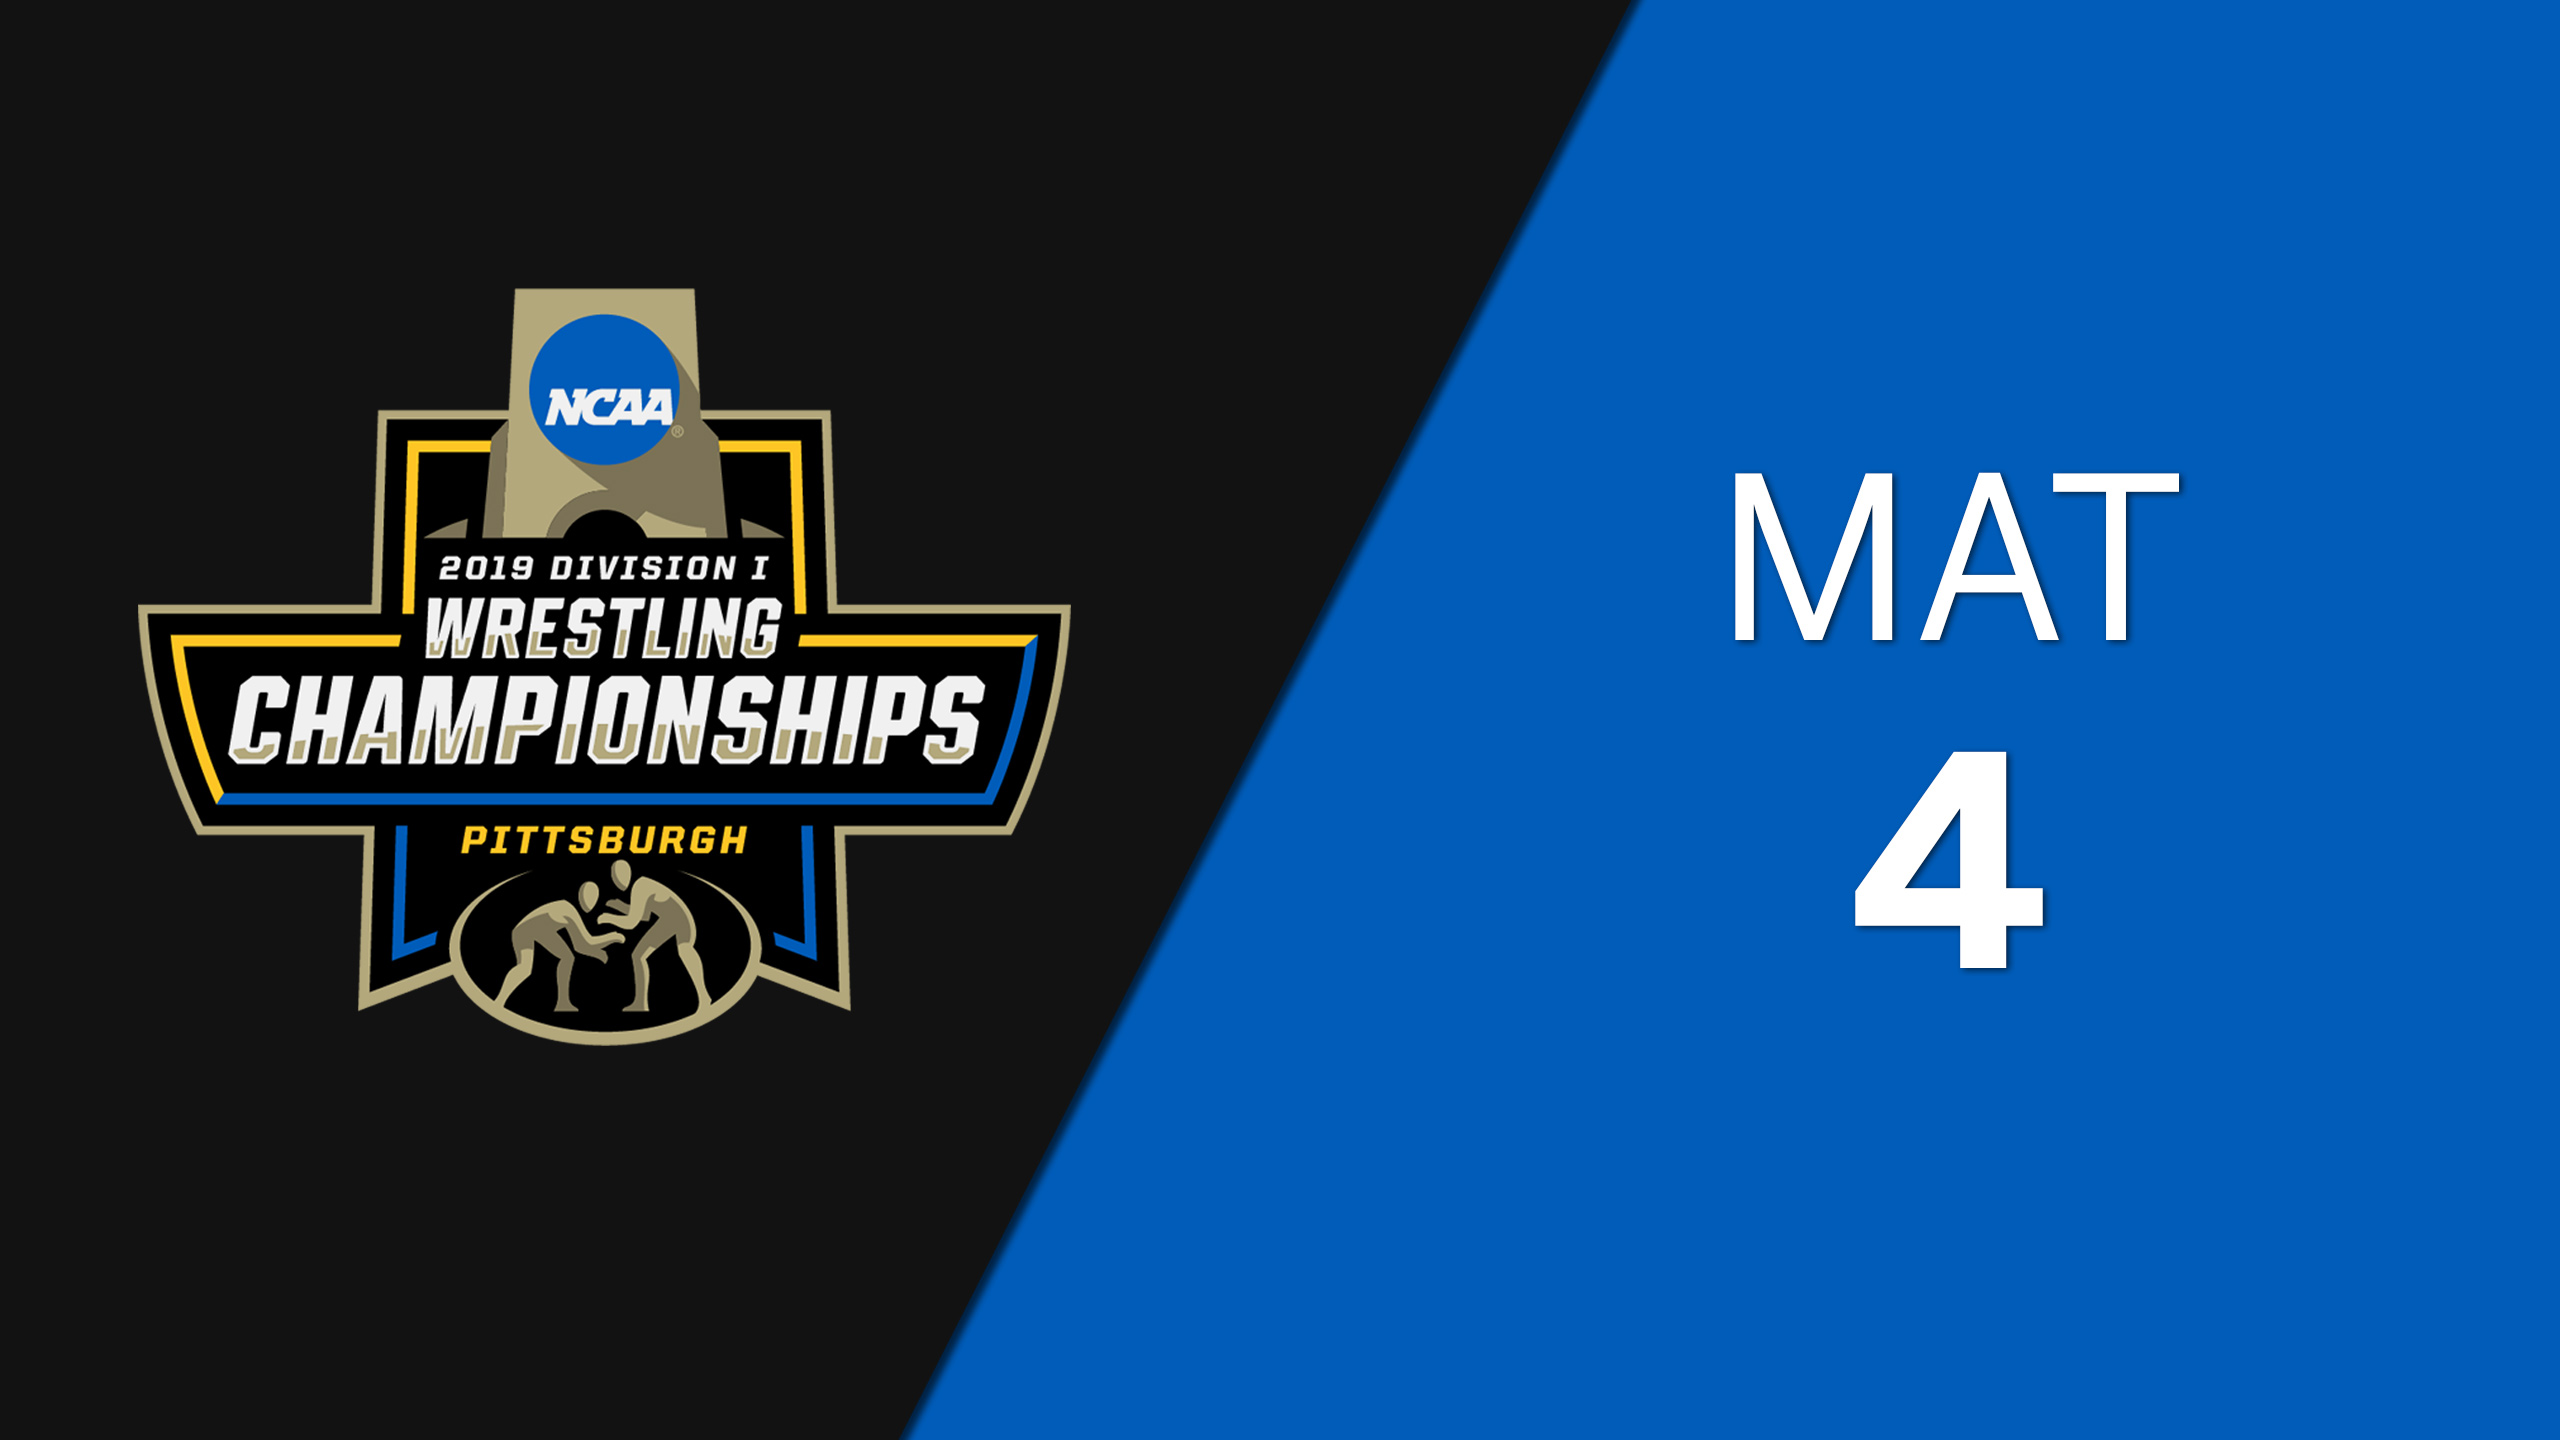 NCAA Wrestling Championship (Mat 4, First Round)